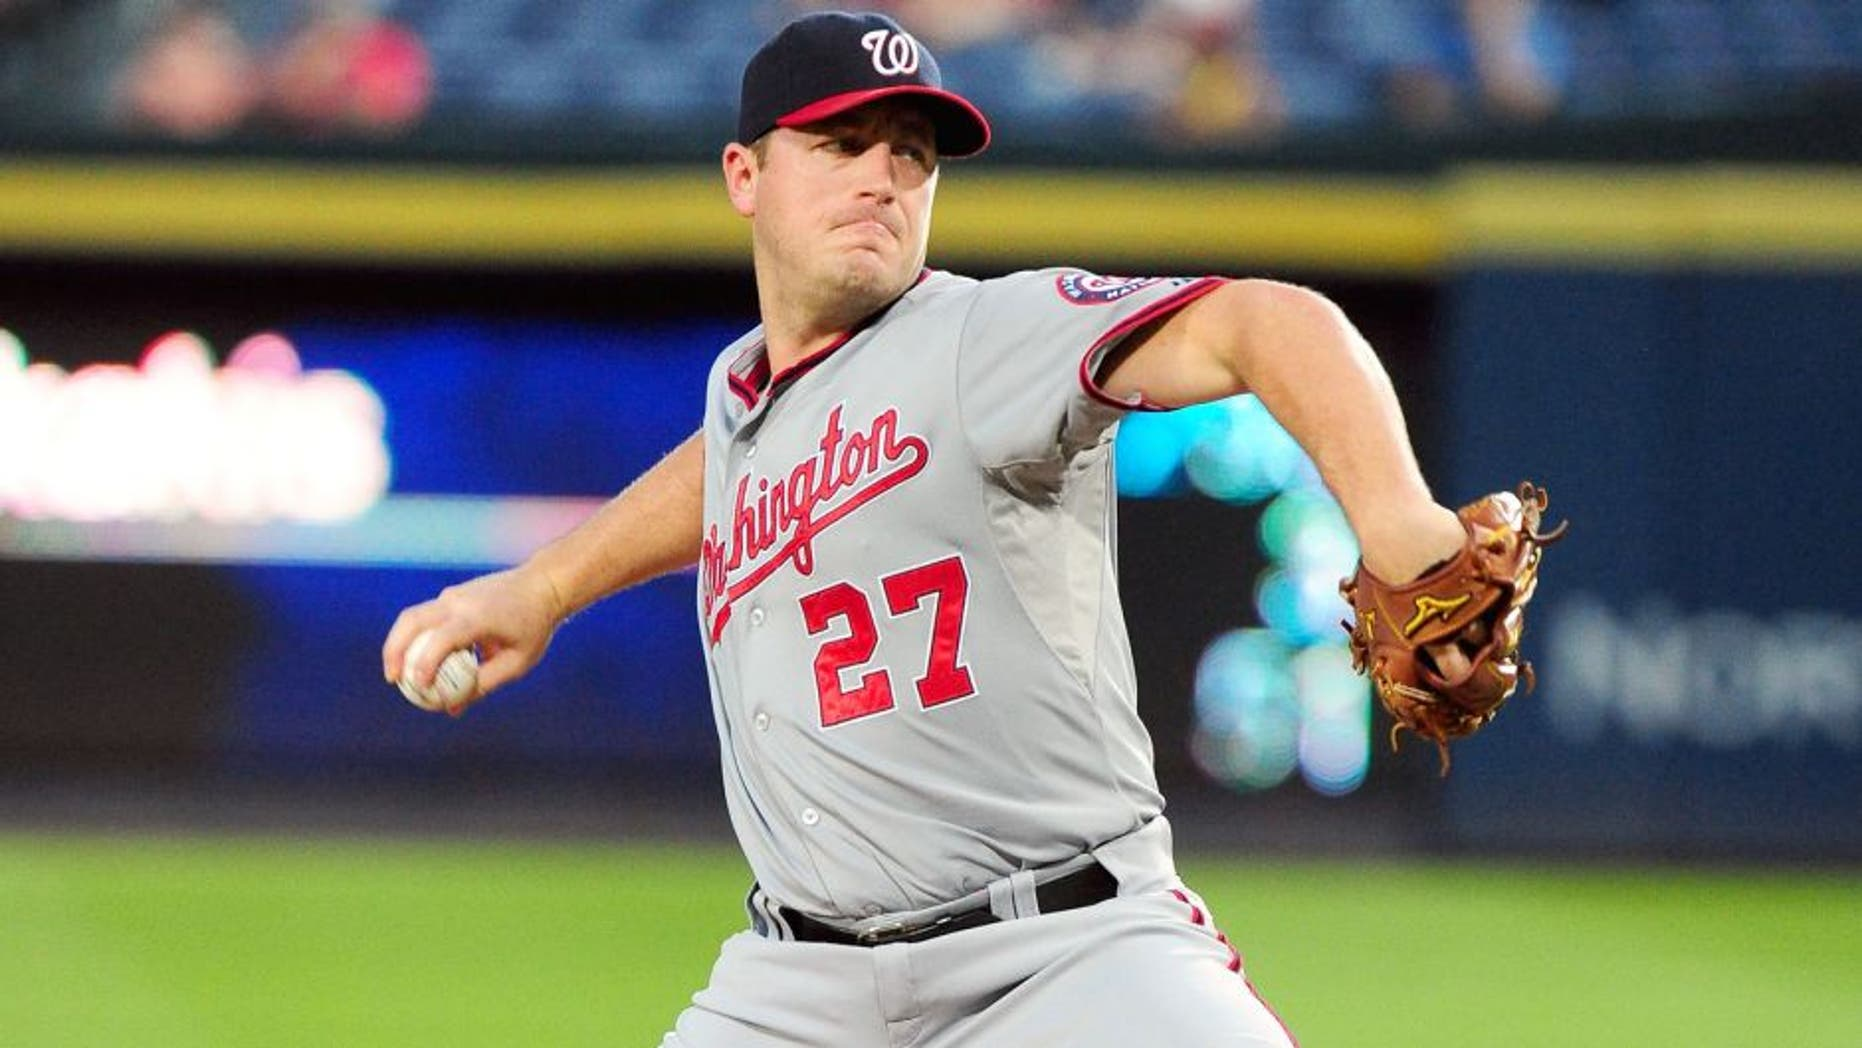 ATLANTA, GA - SEPTEMBER 30: Jordan Zimmermann #27 of the Washington Nationals throws a first inning pitch against the Atlanta Braves at Turner Field on September 30, 2015 in Atlanta, Georgia. (Photo by Scott Cunningham/Getty Images)